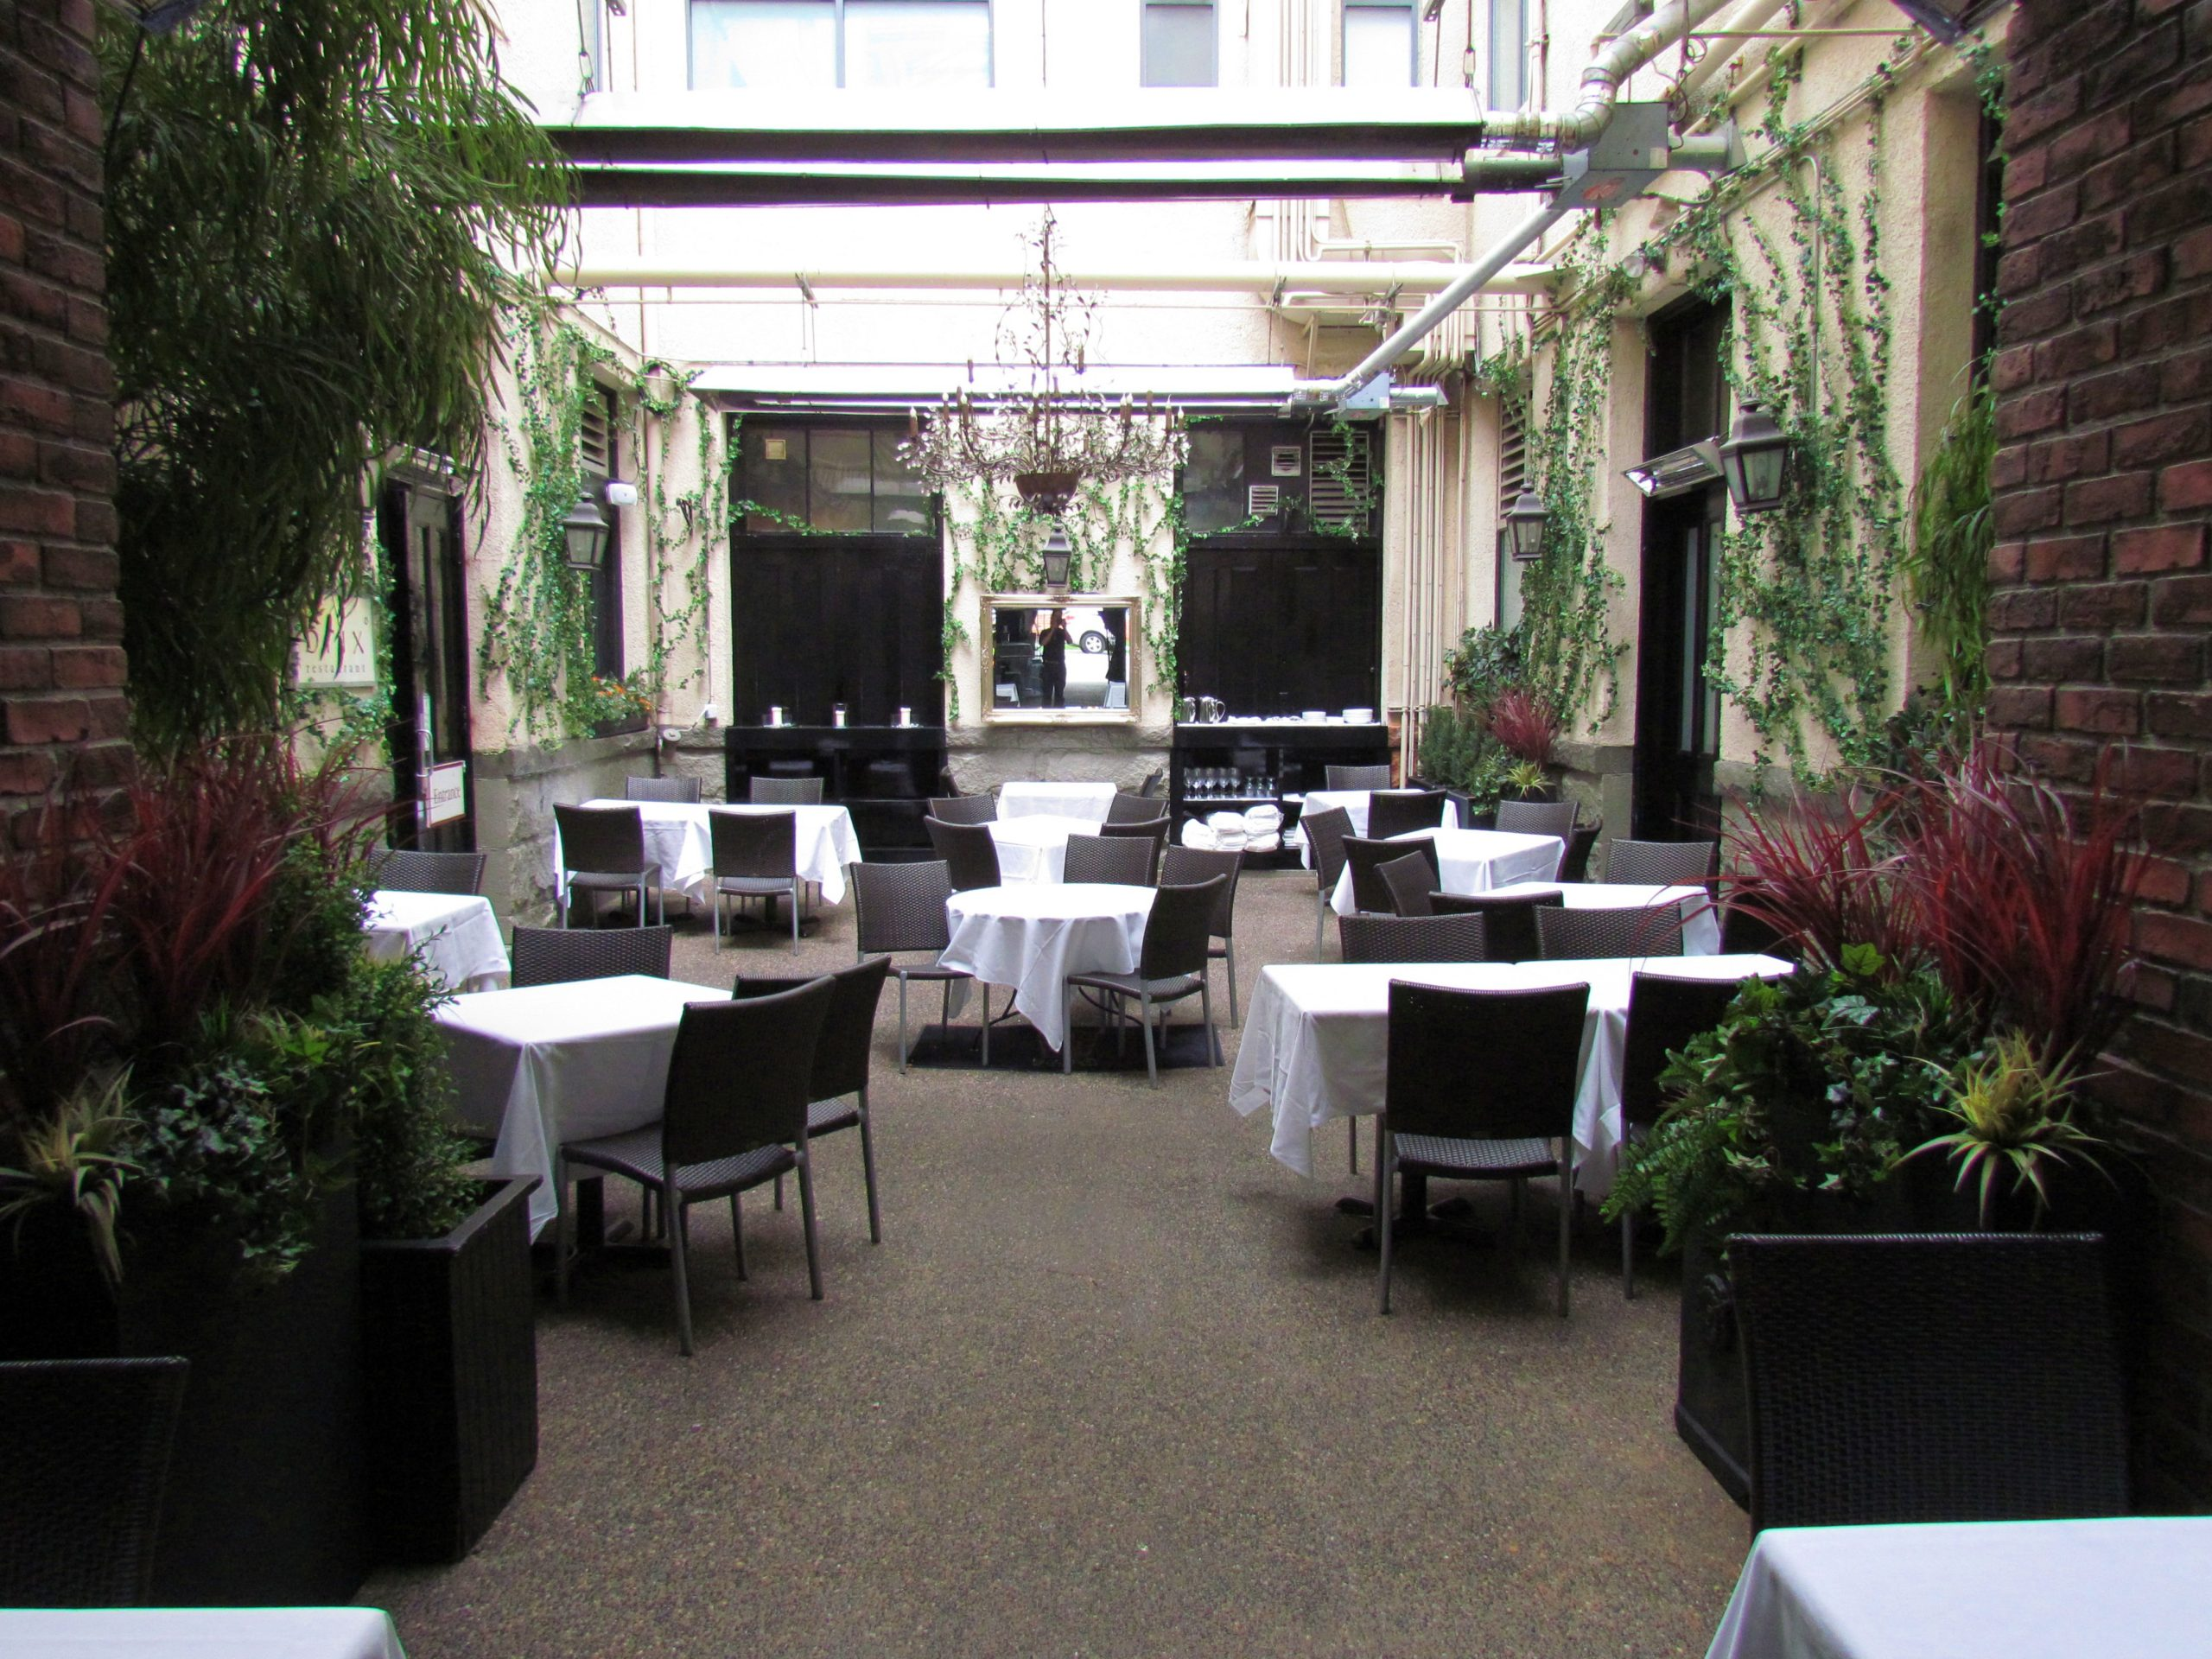 Covered patio decor at Brix and Mortar restaurant with custom potted artificial greenery